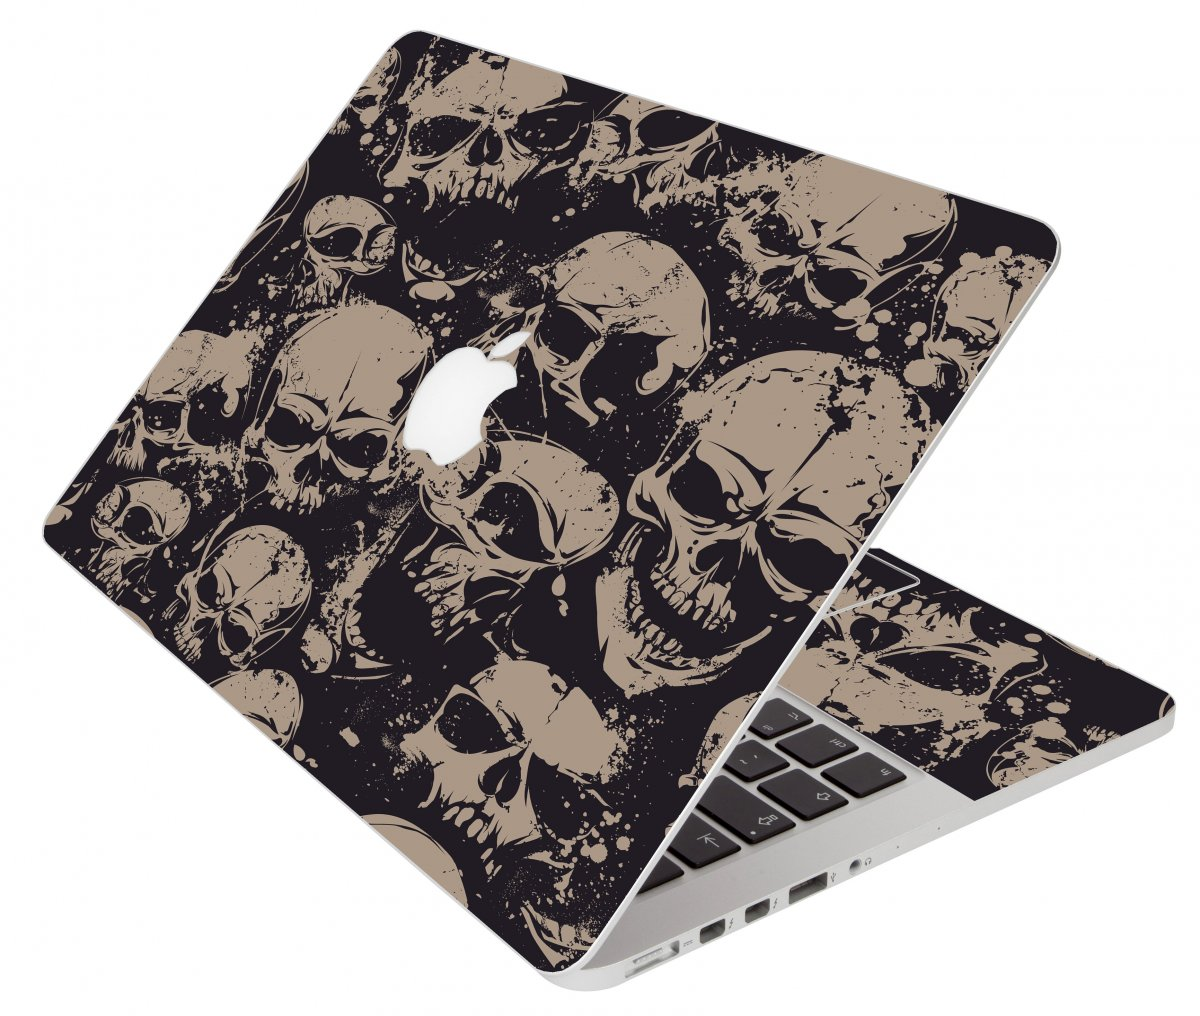 Grunge Skulls Apple Macbook Pro 13 A1278 Laptop Skin